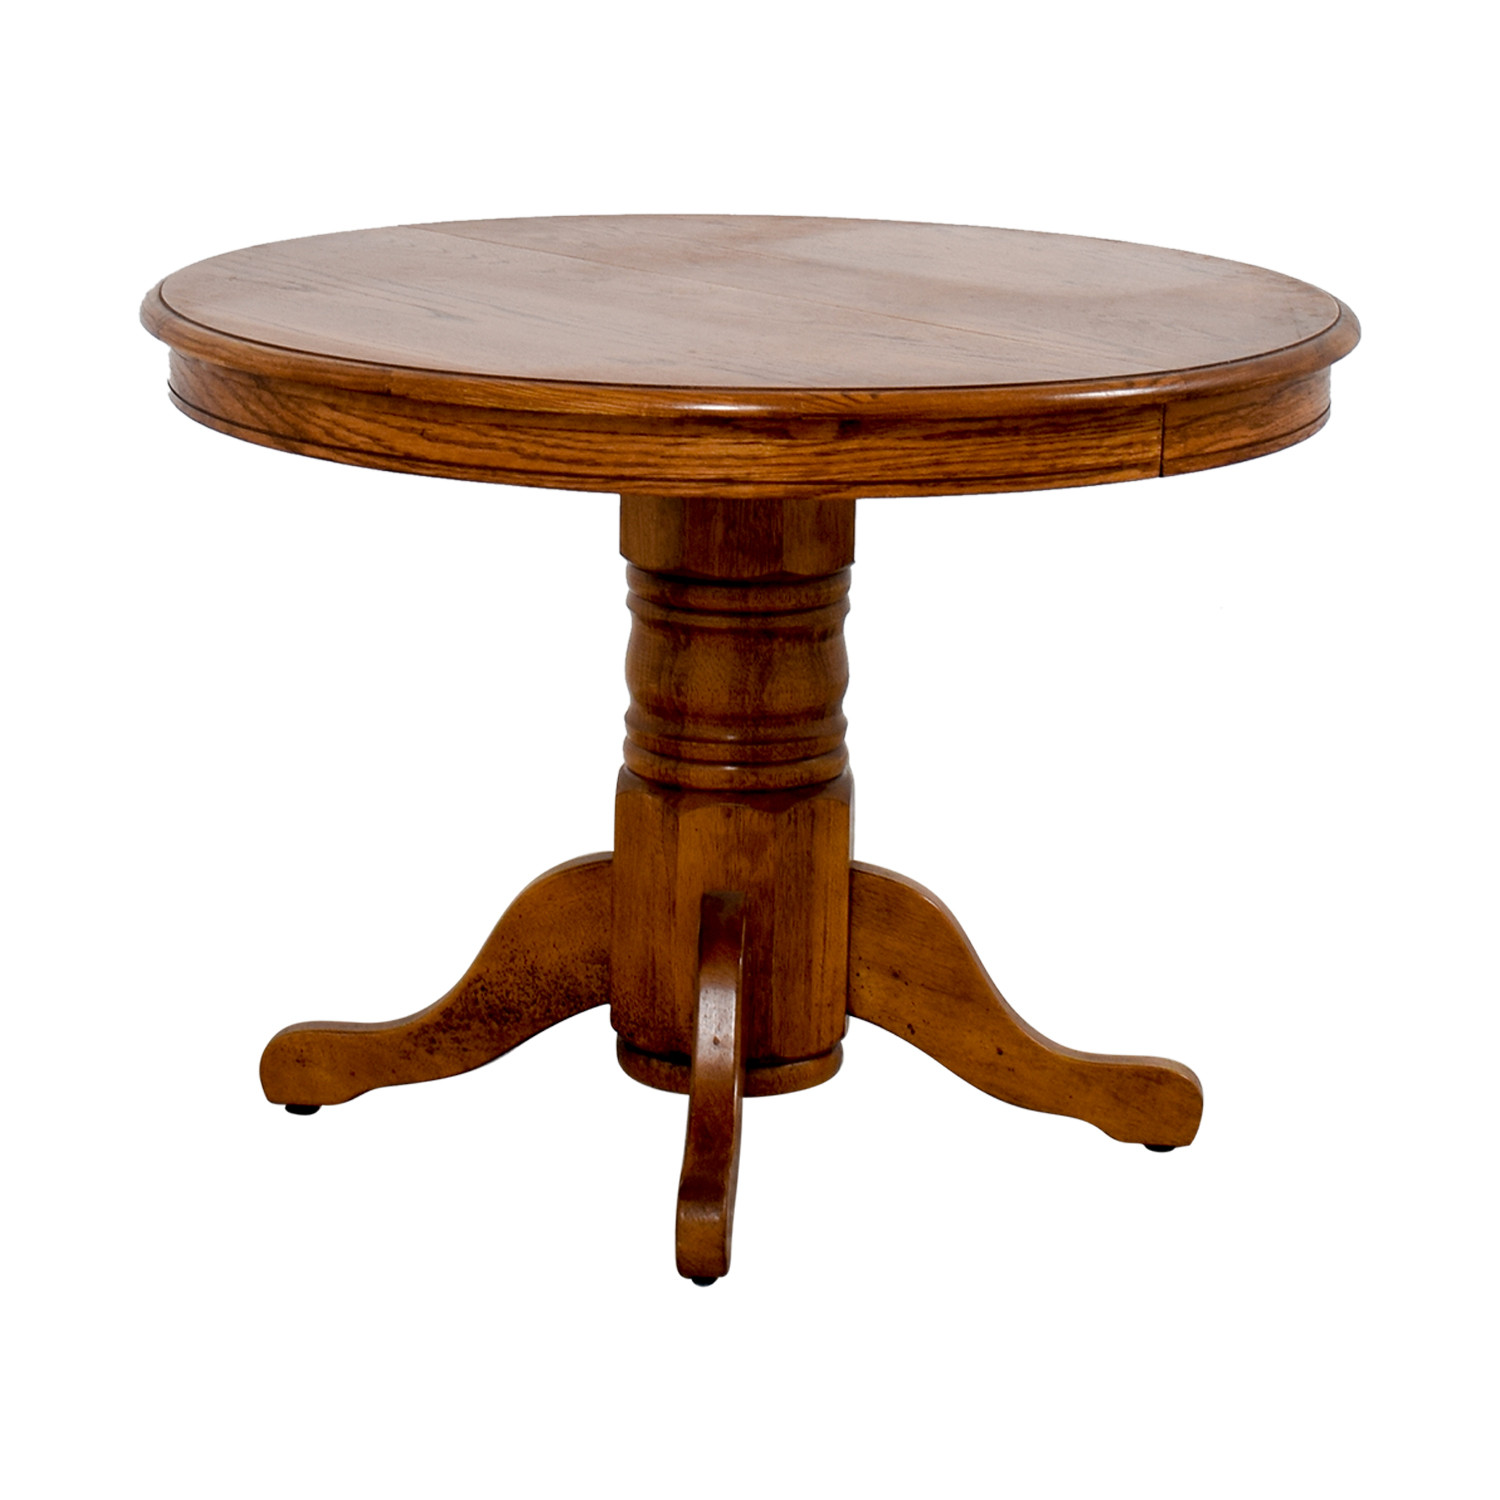 Best ideas about Round Extendable Dining Table . Save or Pin OFF Poundex Poundex Round Wood Extendable Dining Now.